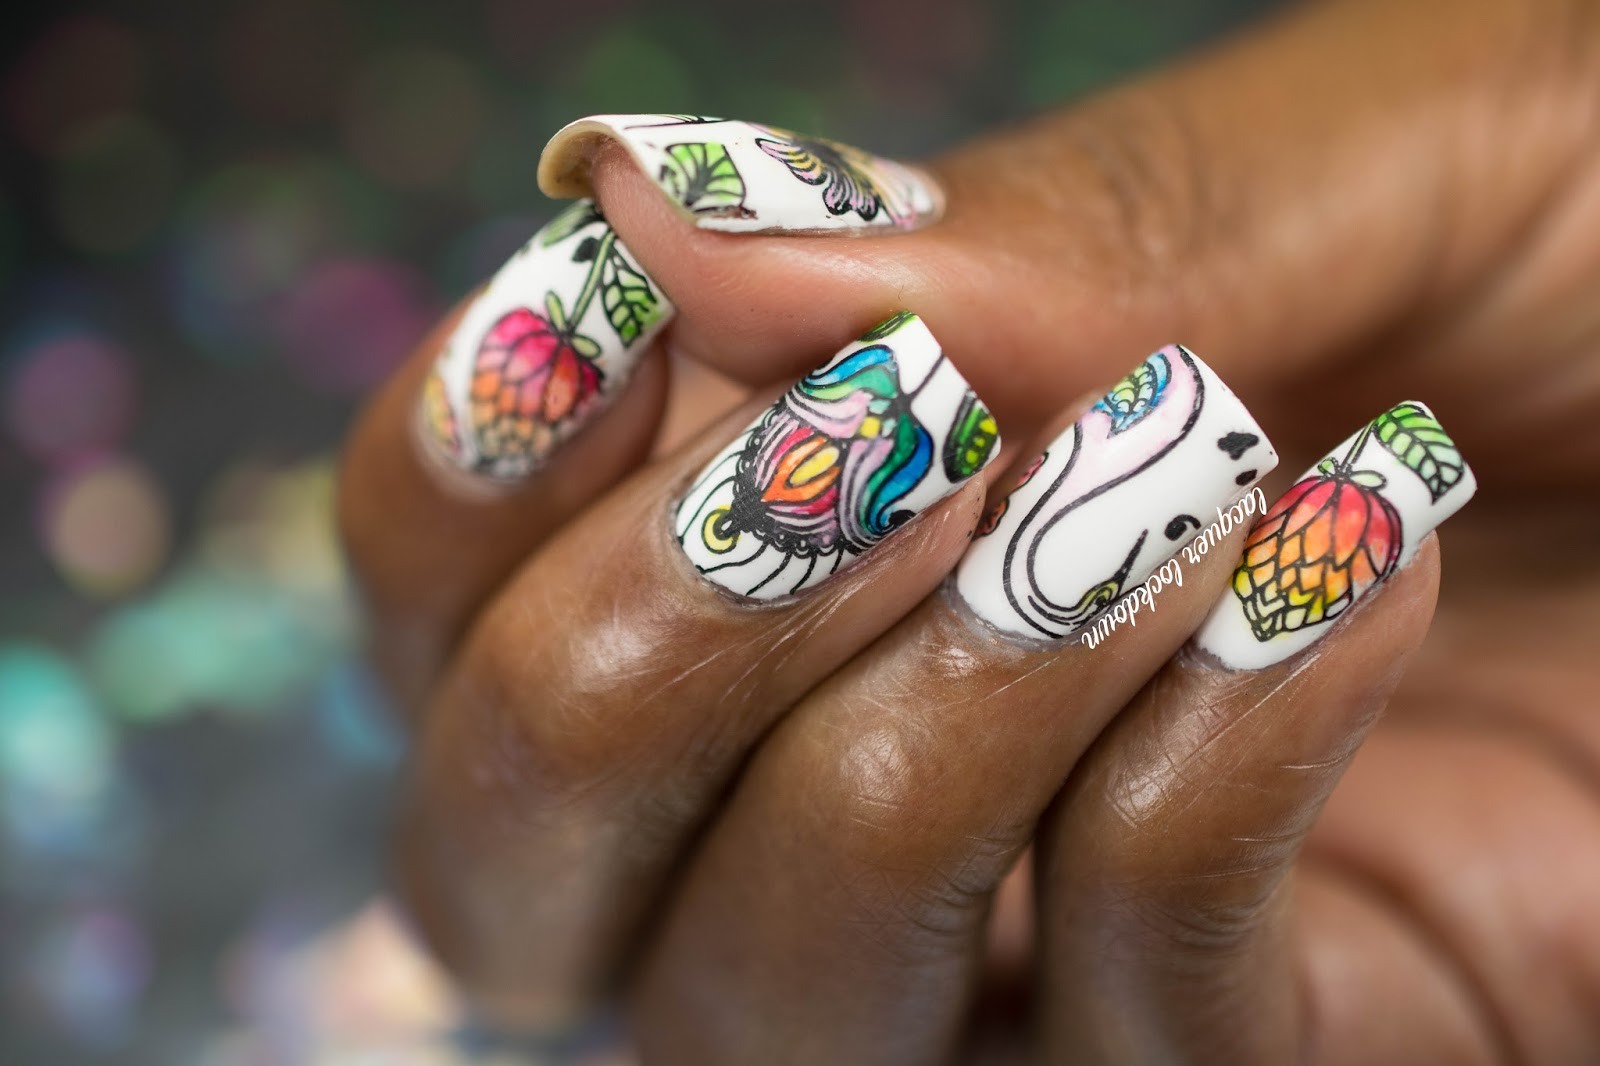 Lacquer Lockdown: My Favorite Nail Art Of 2015!